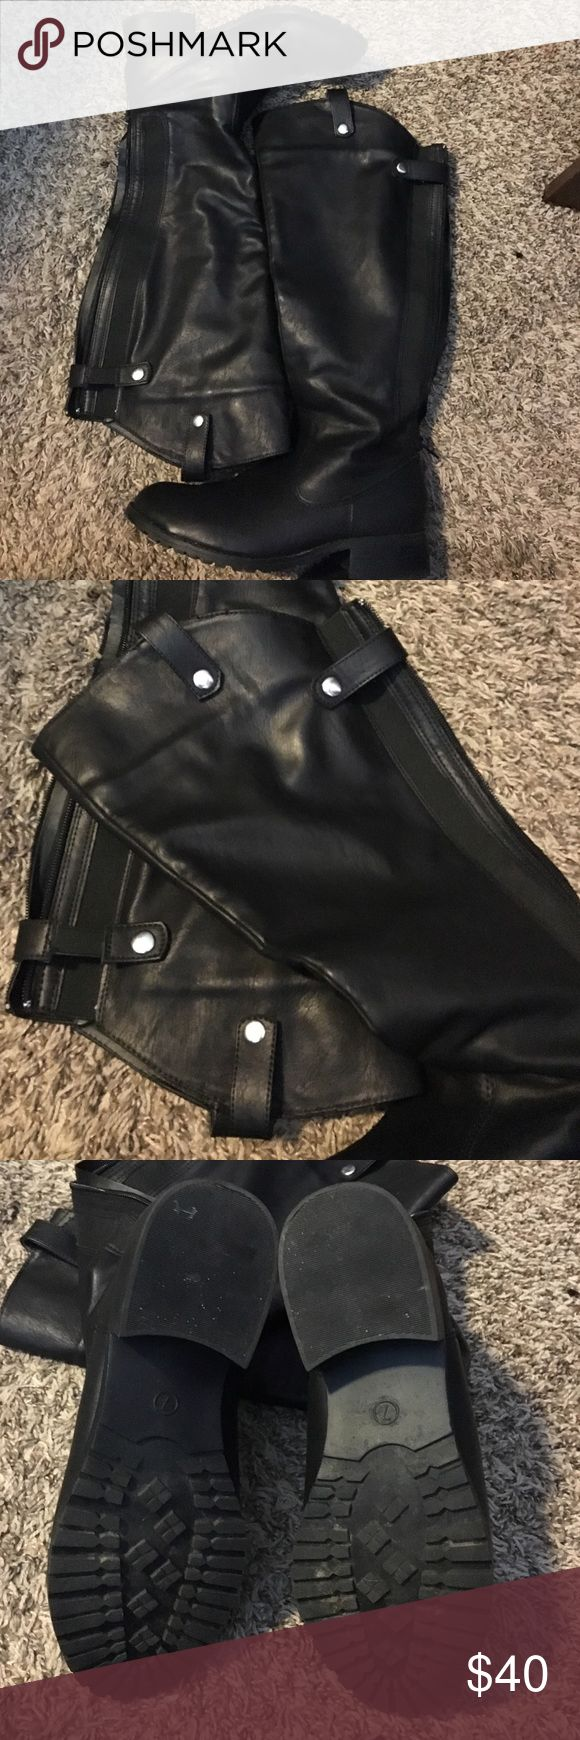 Black knee high boots. Jennifer Lauren knee high boots. Wore only twice. Great condition. Slight heel. Jennifer Lauren Shoes Heeled Boots